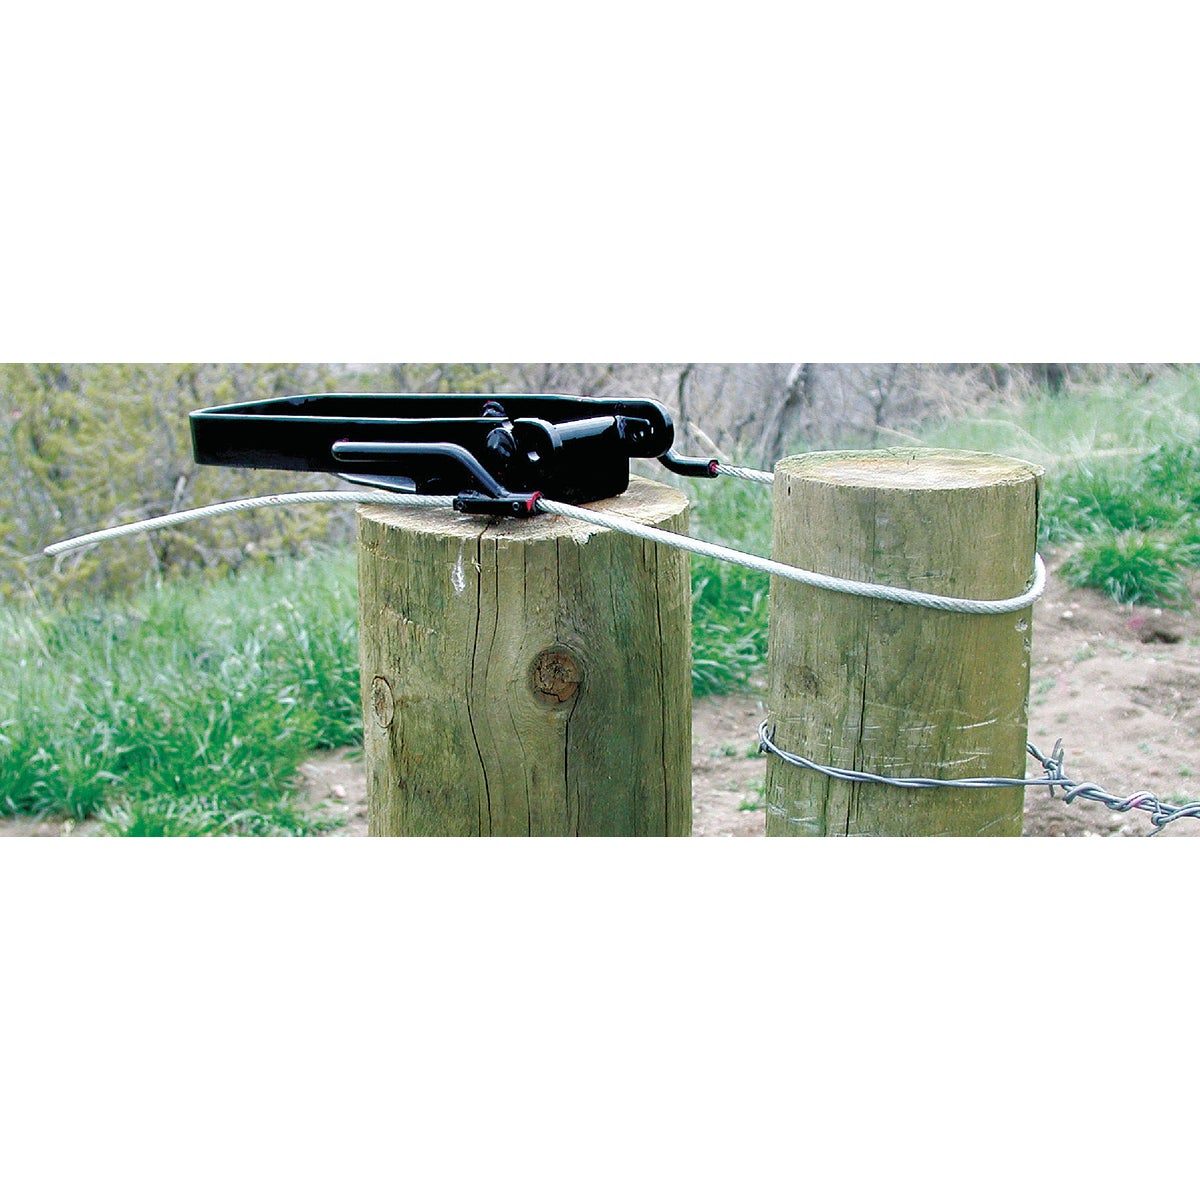 ADJUSTABLE GATE CLOSER - S16101800-GL161018 by Speeco Farmex